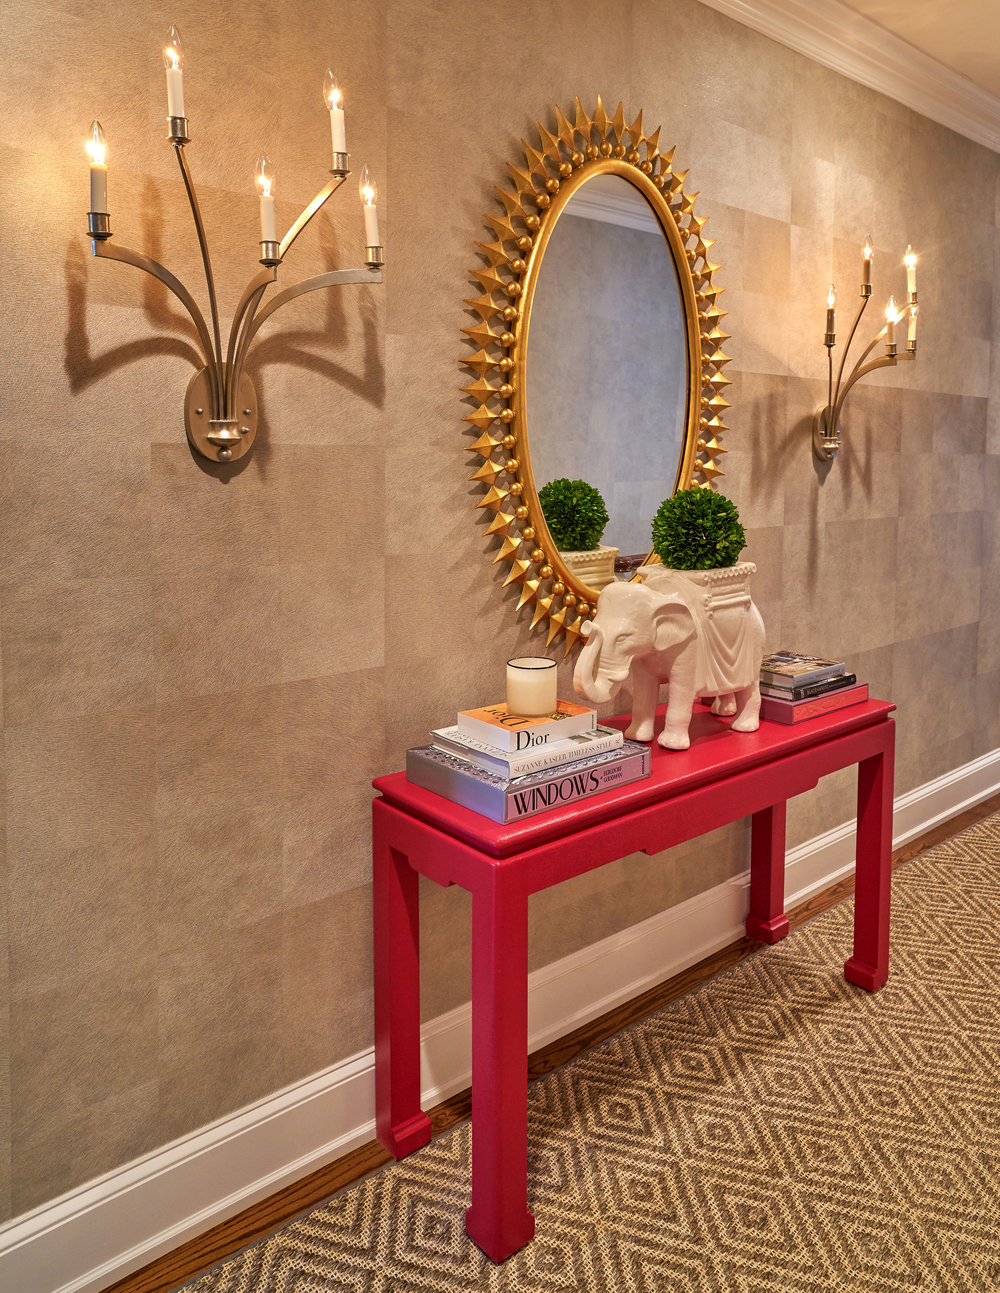 Sophisticated hyde wallcovering brings elegance to this vignette.